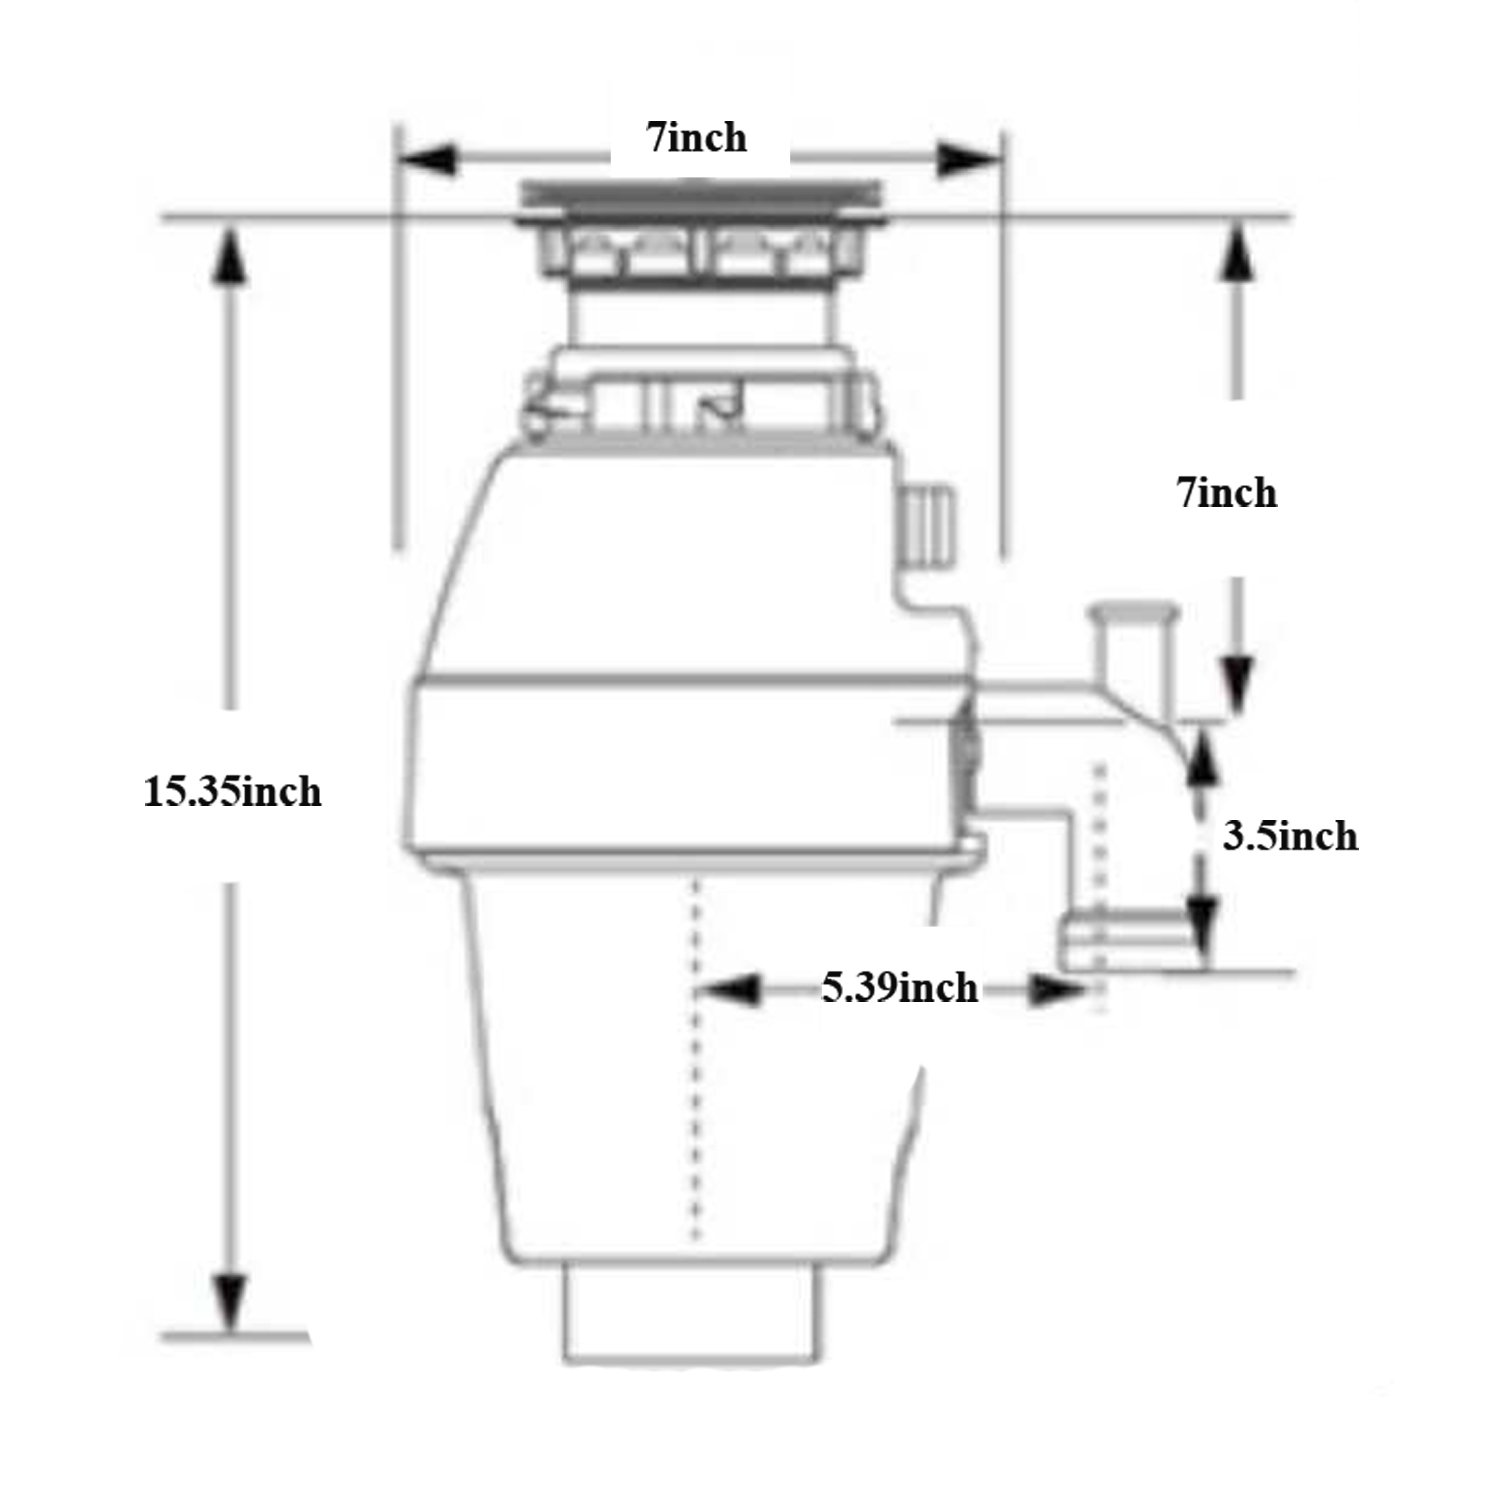 Cleesink 1/2 HP Food Waste Disposal, Kitchen Continuous Feed Garbage Disposal, 0.5 Horsepower, DC motor by CLEESINK (Image #5)